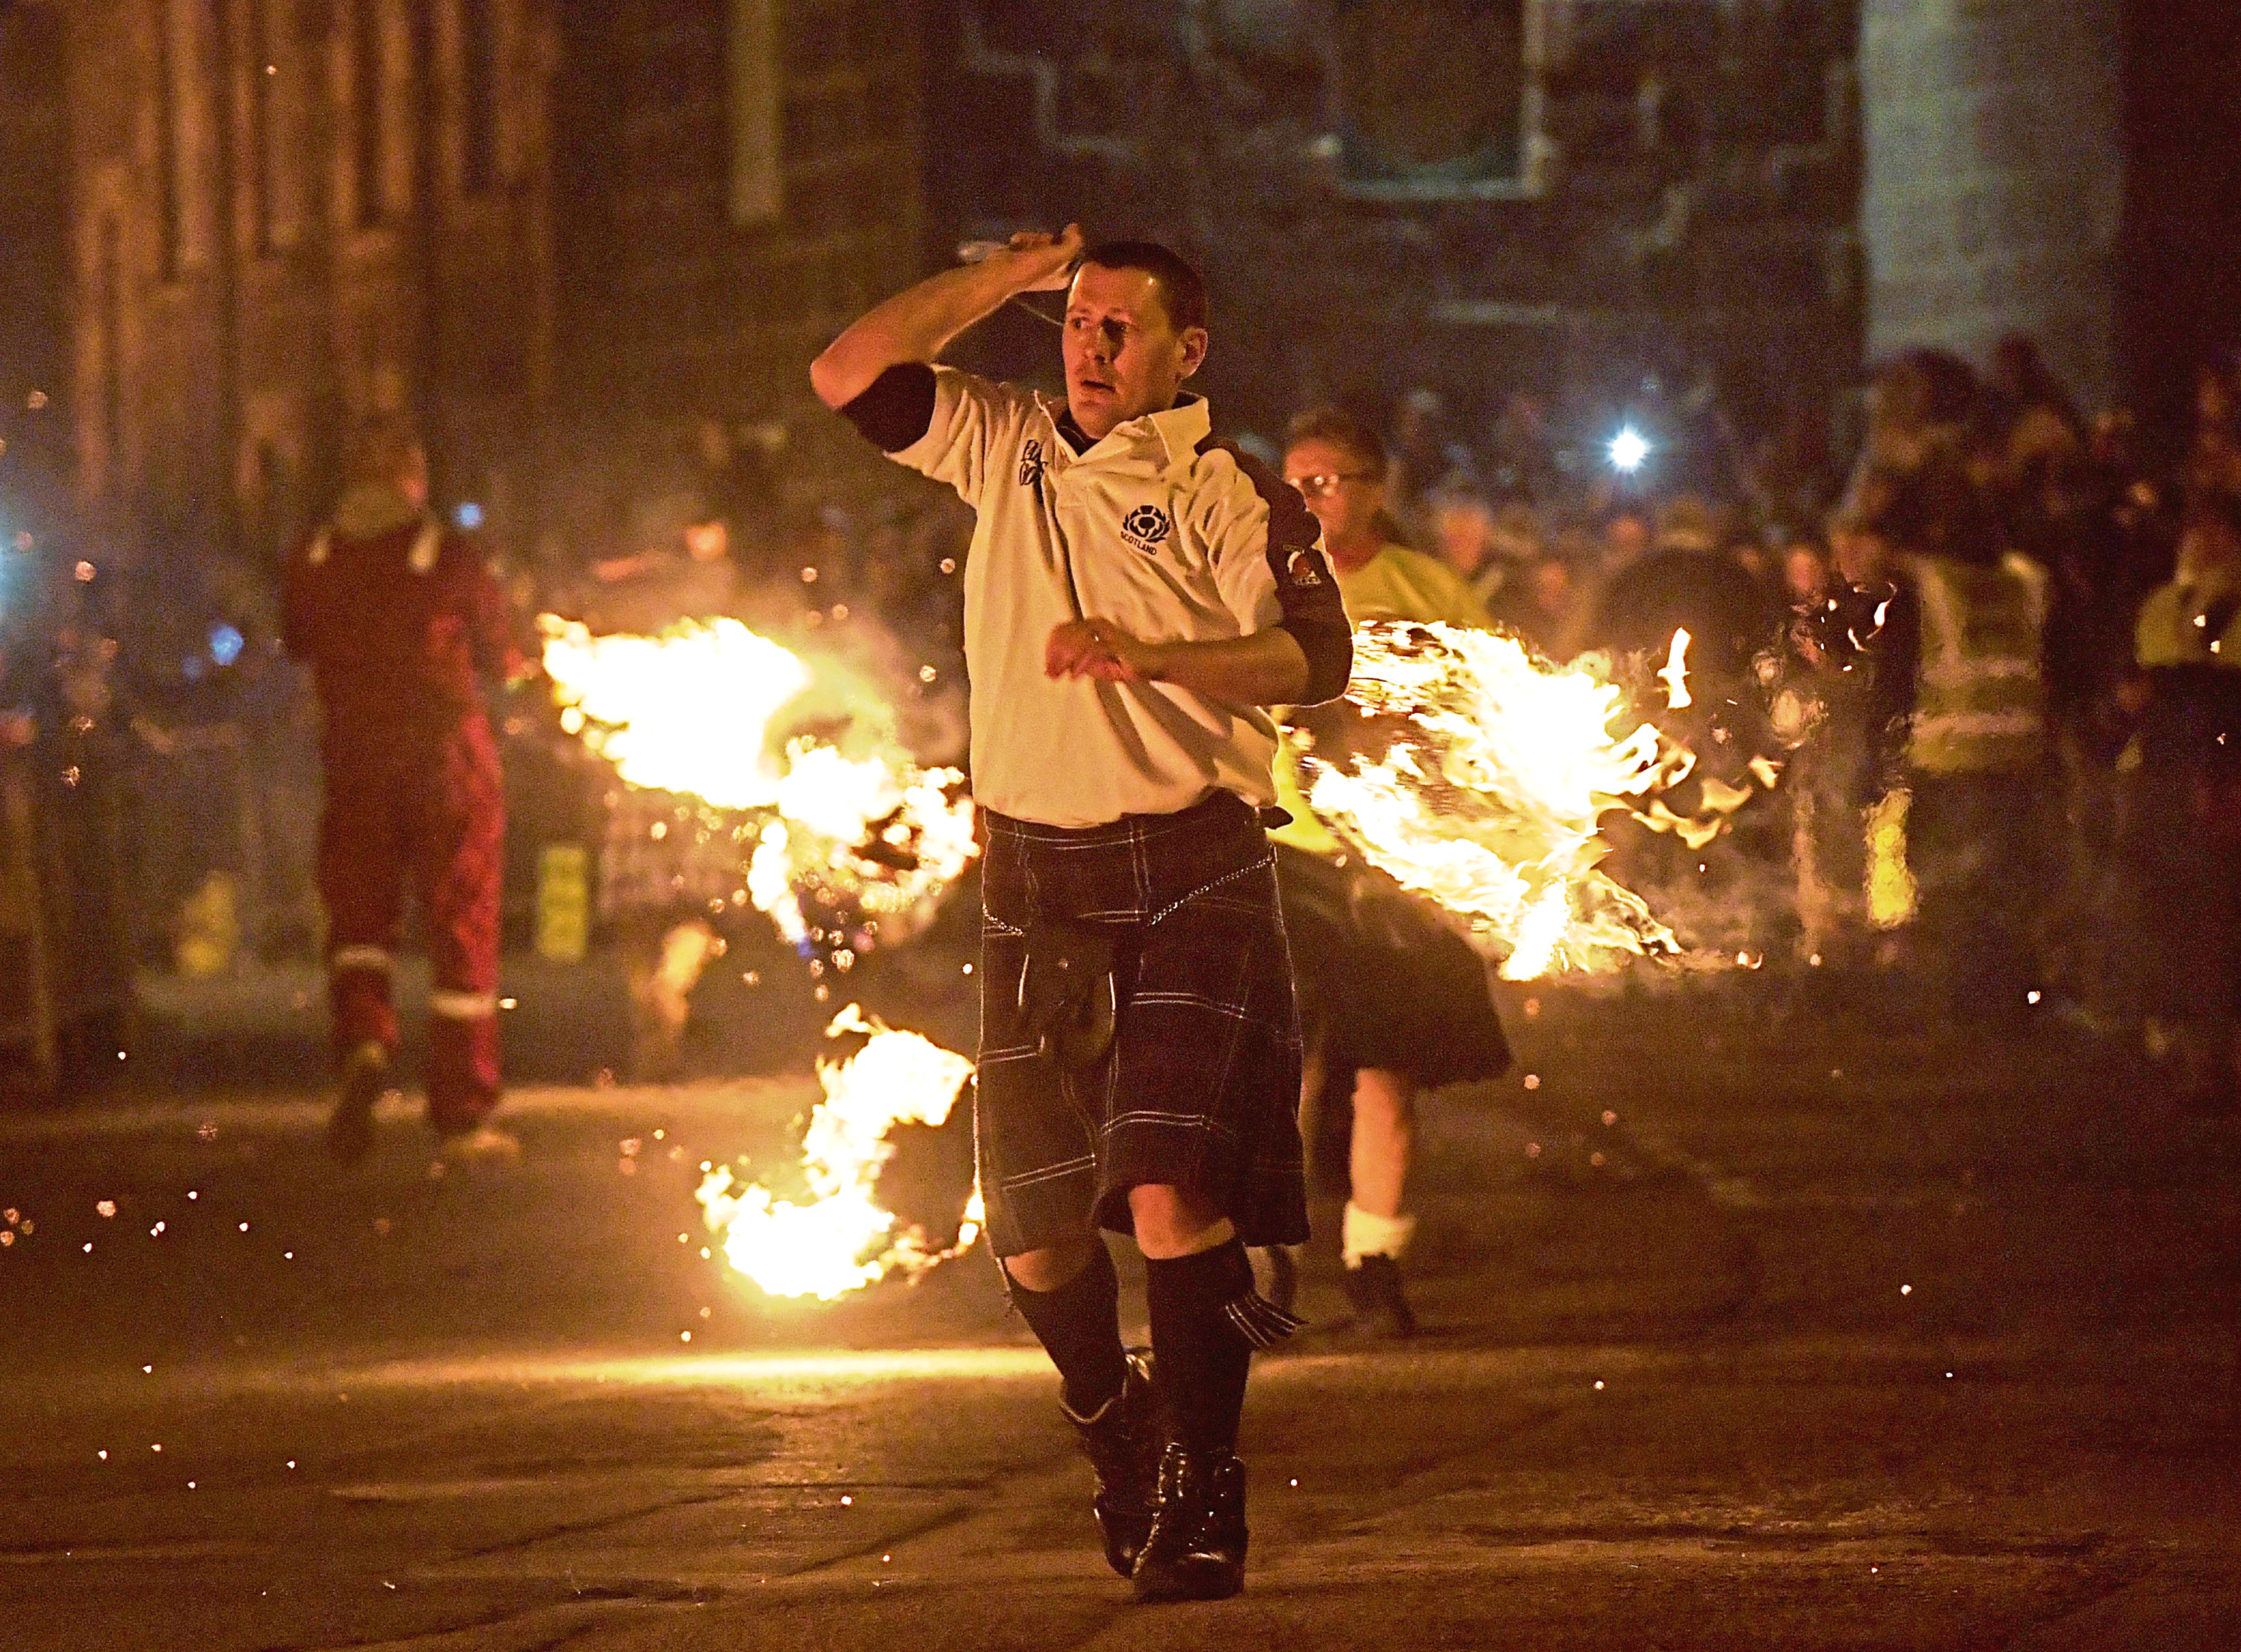 The Stonehaven fireballs has been part of the town for around 150 years